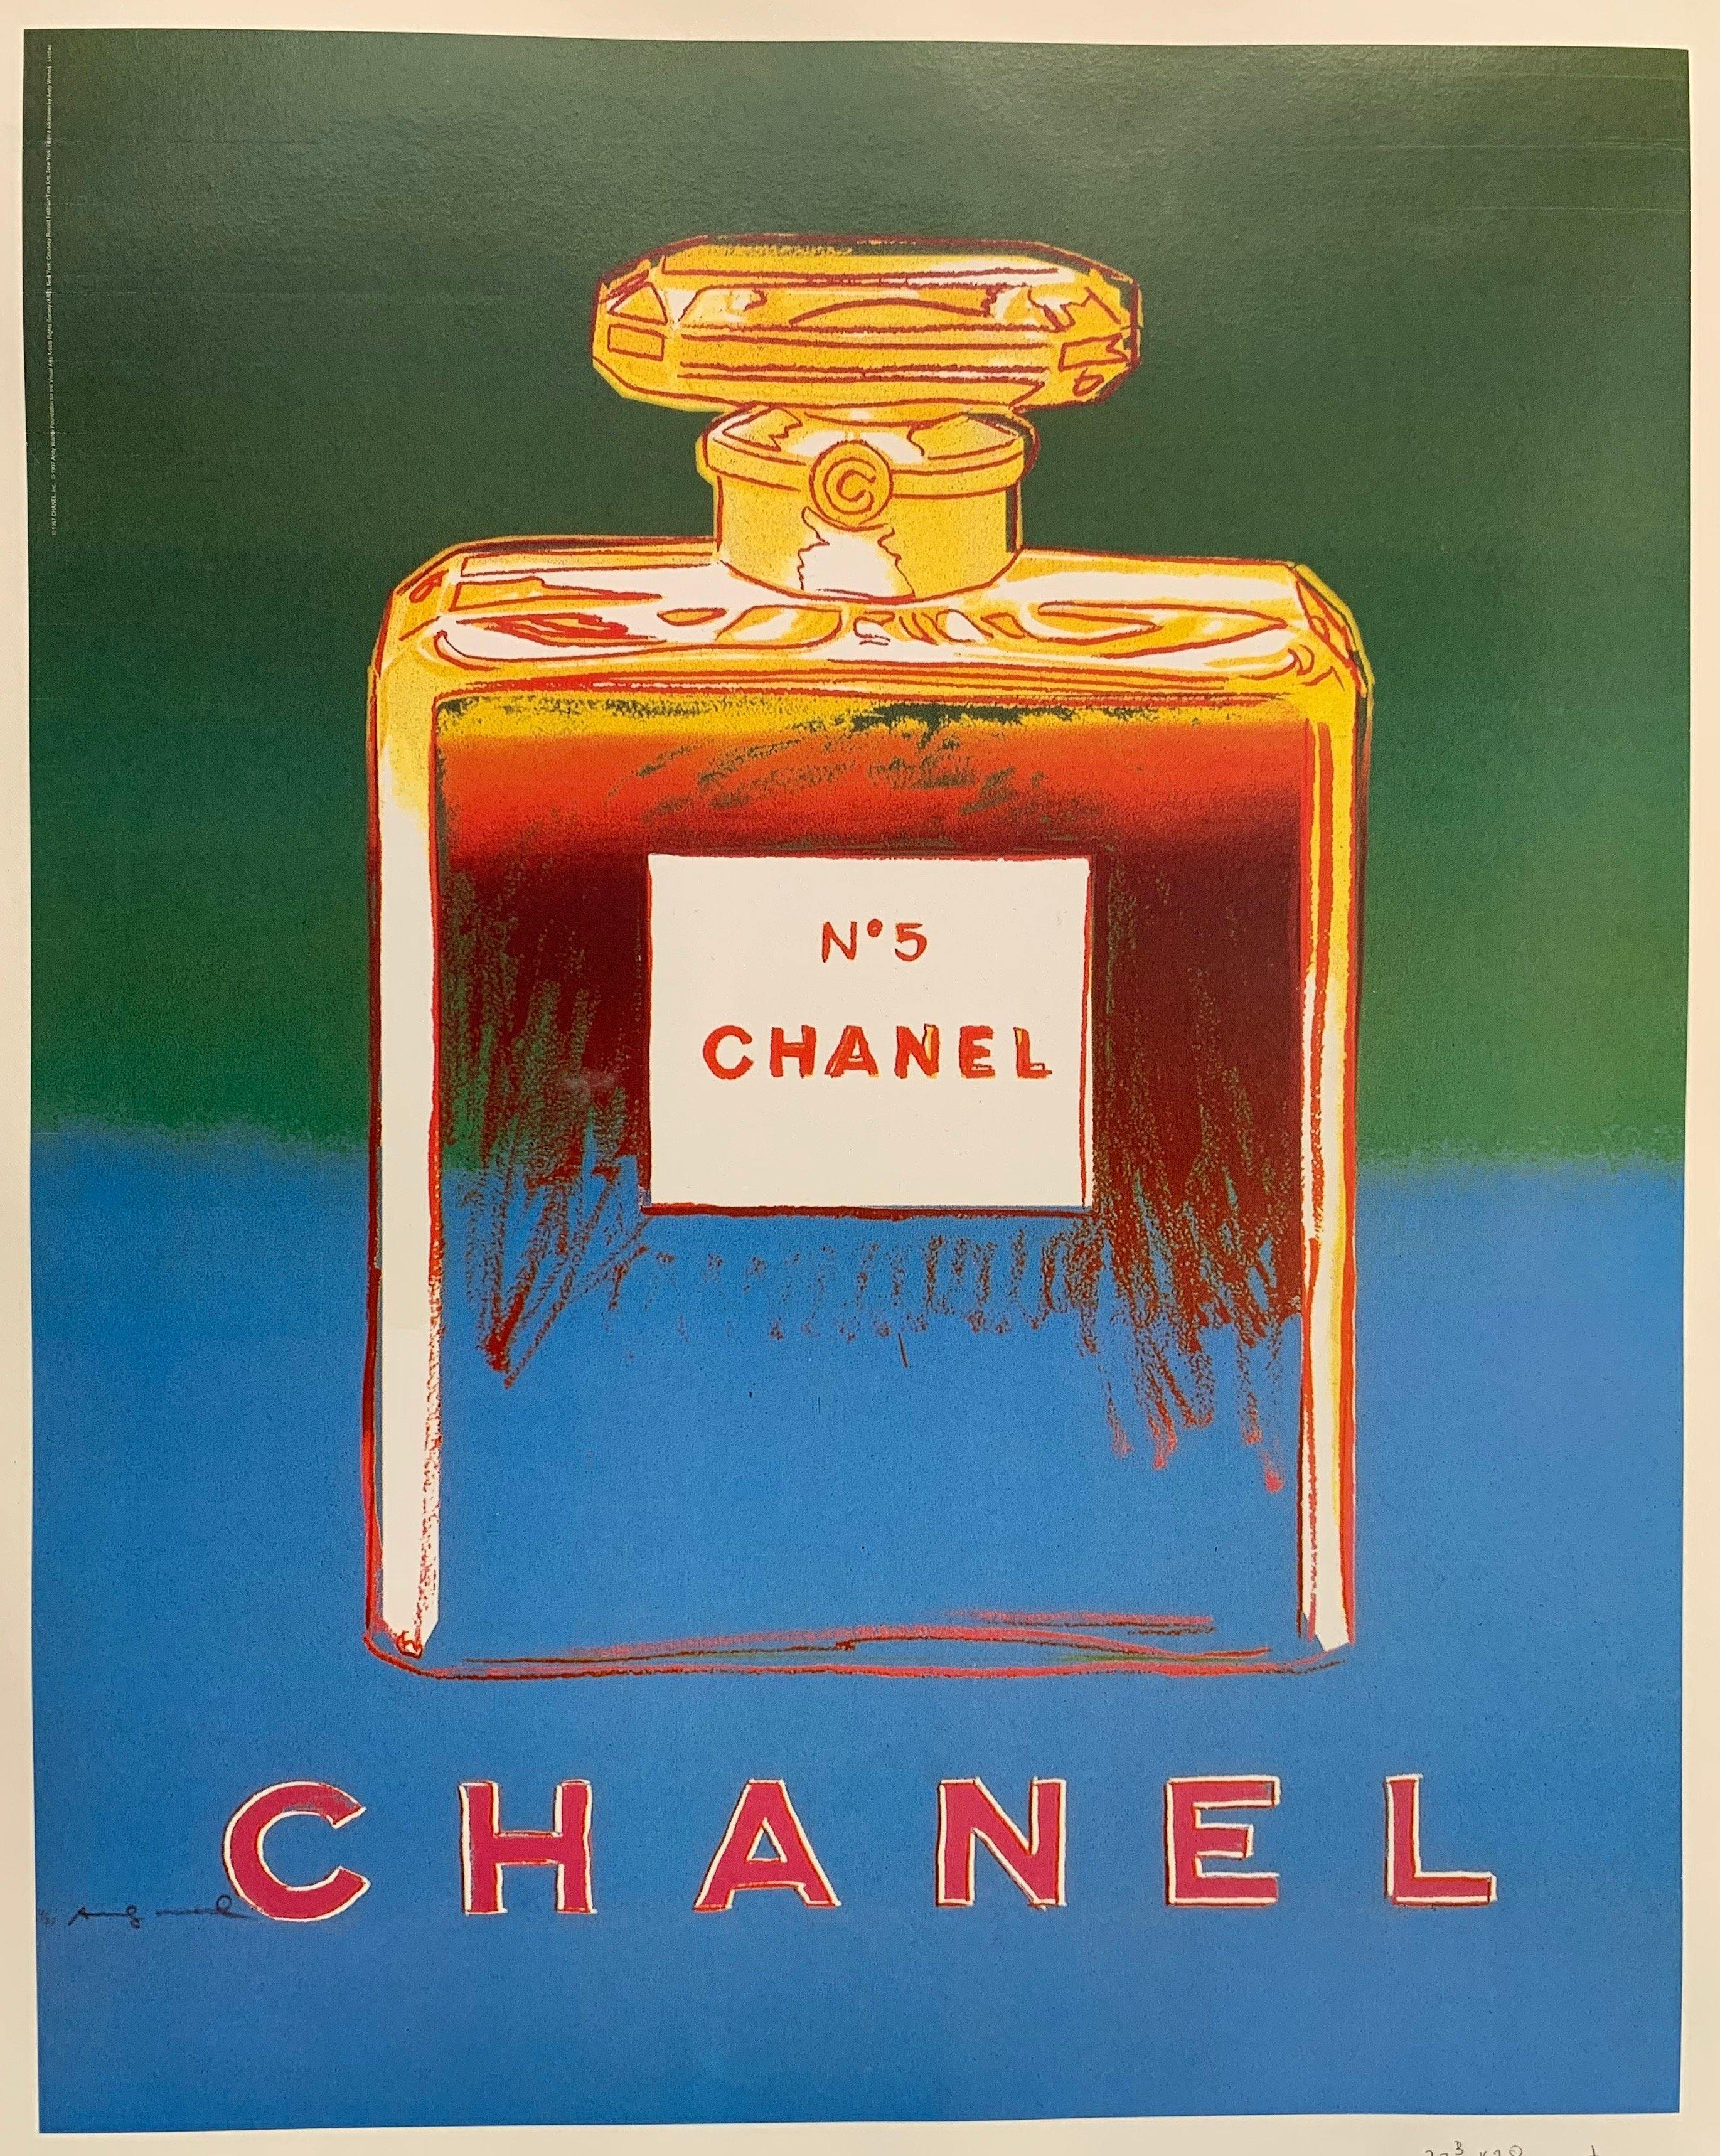 Chanel (Blue and Green) - Poster Museum